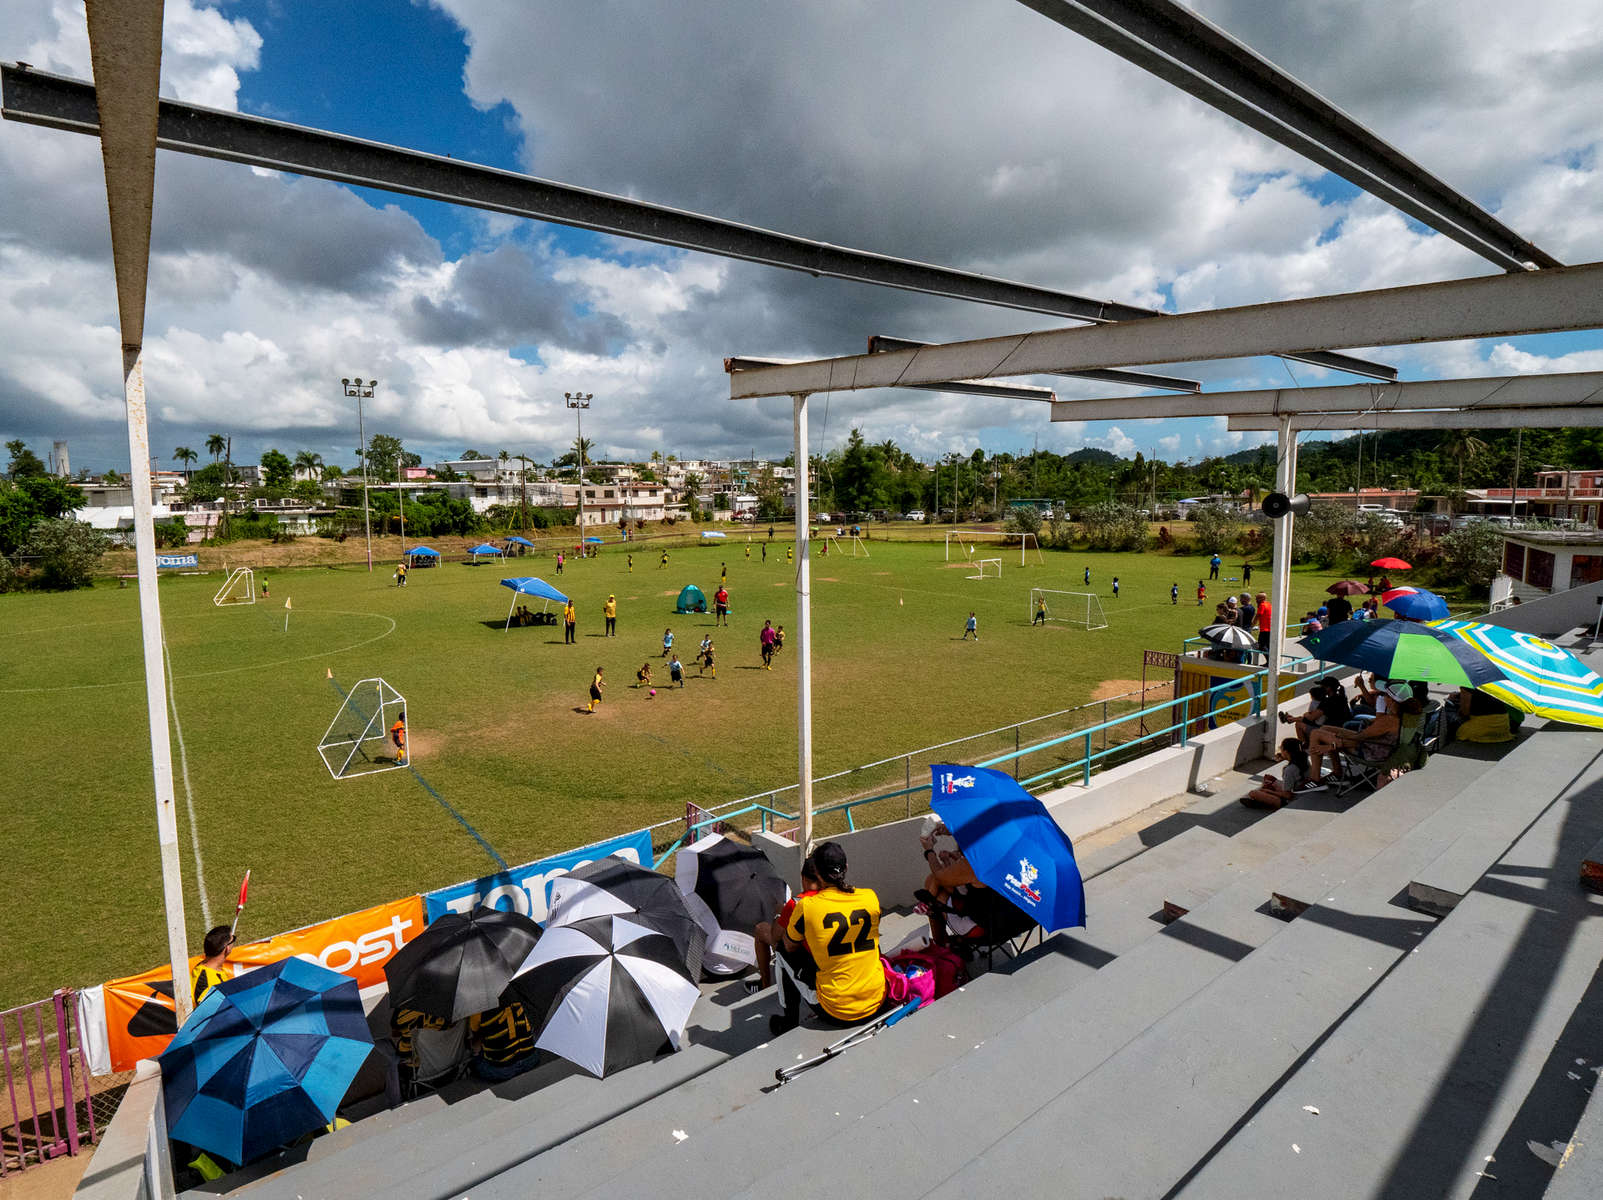 CAGUAS, PUERTO RICO - NOVEMBER 10: Parents watch their kids play Little League Soccer under a damaged roof caused by Hurricane Maria.  They are using umbrellas to shield themselves from the Sun.  on November 10, 2018 in Caguas, Puerto Rico. The effort continues in Puerto Rico to remain and rebuild more than one year after the Hurricane Maria hit and devastated the island on September 20, 2017. The official number of deaths from the disaster is 2,975.